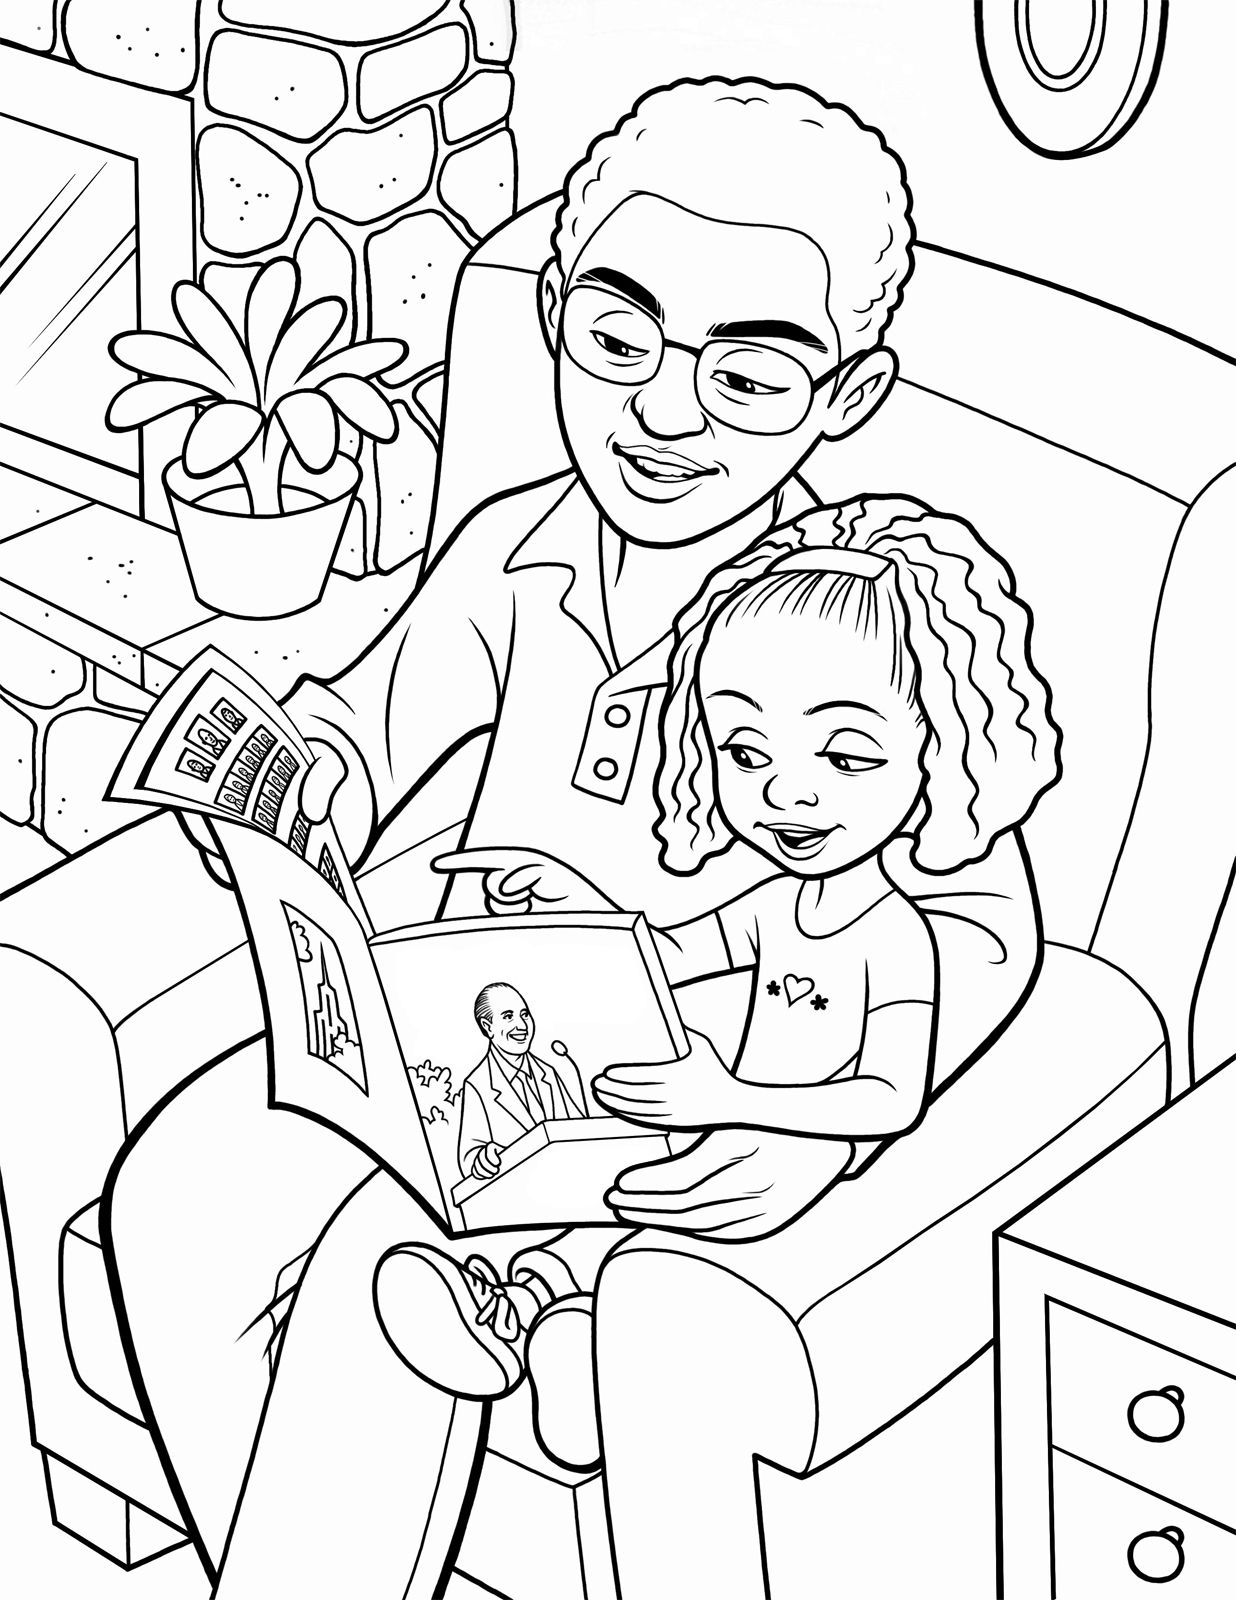 father and daughter reading together from lds org ldsprimary